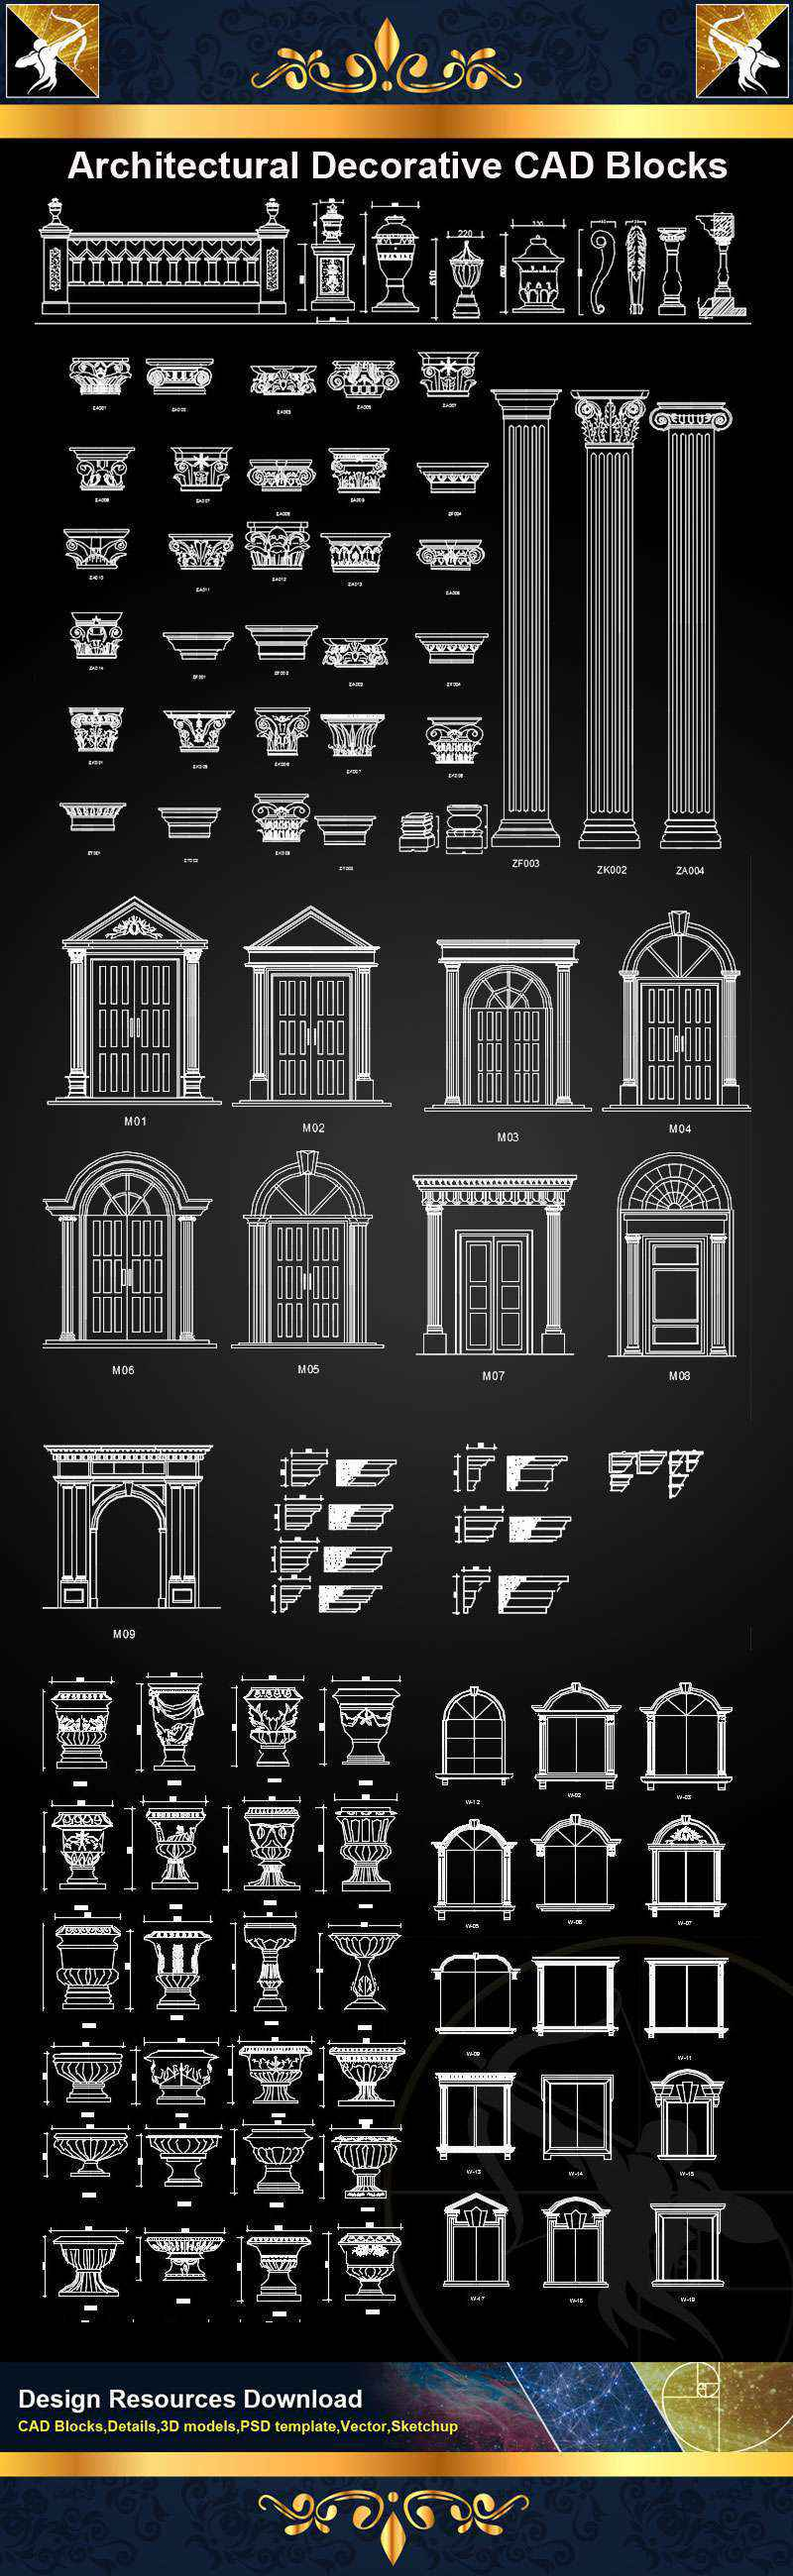 Autocad Blocks Architectural Decorative Cad Blocks Autocad Decoration Blocks Drawings Cad Details Elevation